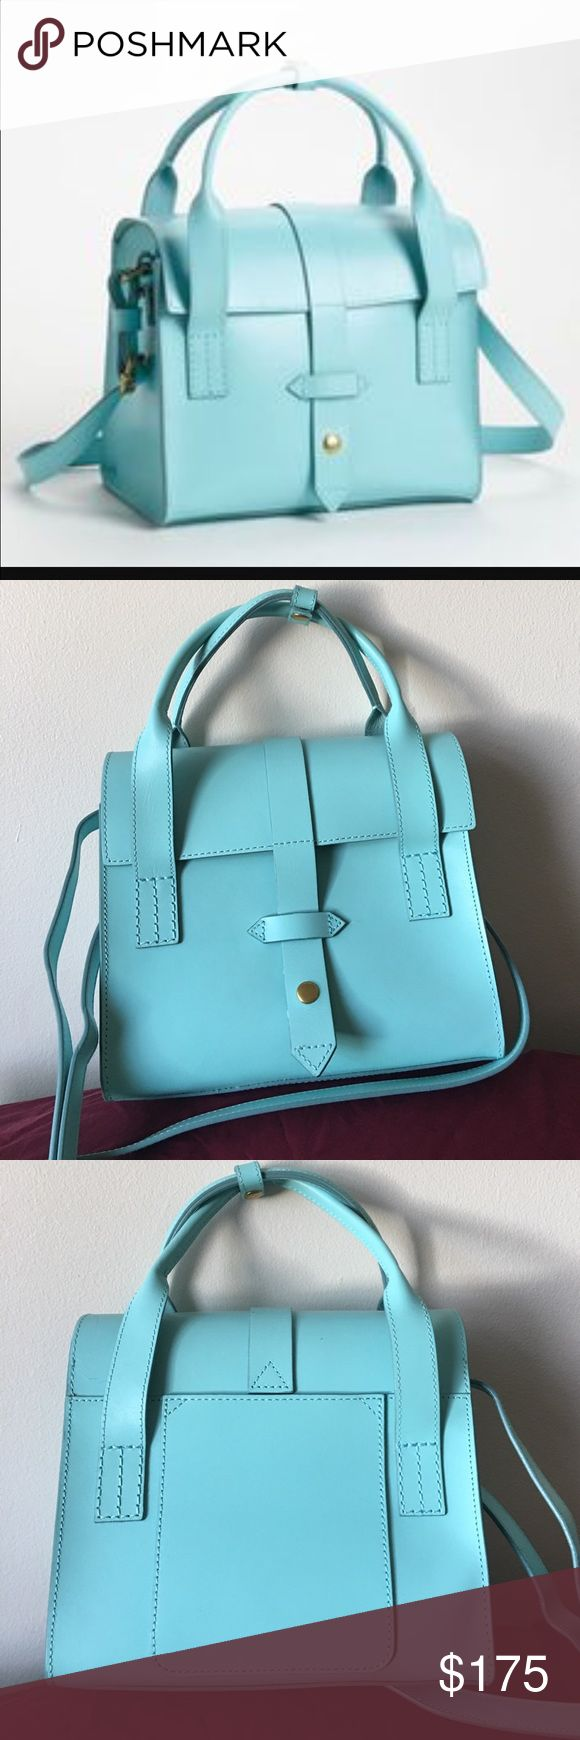 """IIIBeca by Joy Gryson Handbag Aqua Color Longtime New Yorker Joy Gryson designs the perfect everyday-bag down to a science. Case-in-point: this sturdy vachetta leather messenger bag from her IIIBeCa collection, complete with a detachable lining that converts into a spare pouch. SPECS: One outer pocket, Snap front, Leather; removable nylon lining, 8.5""""H, 10""""W, 4""""D, 19.5"""" strap drop Joy Gryson Bags"""